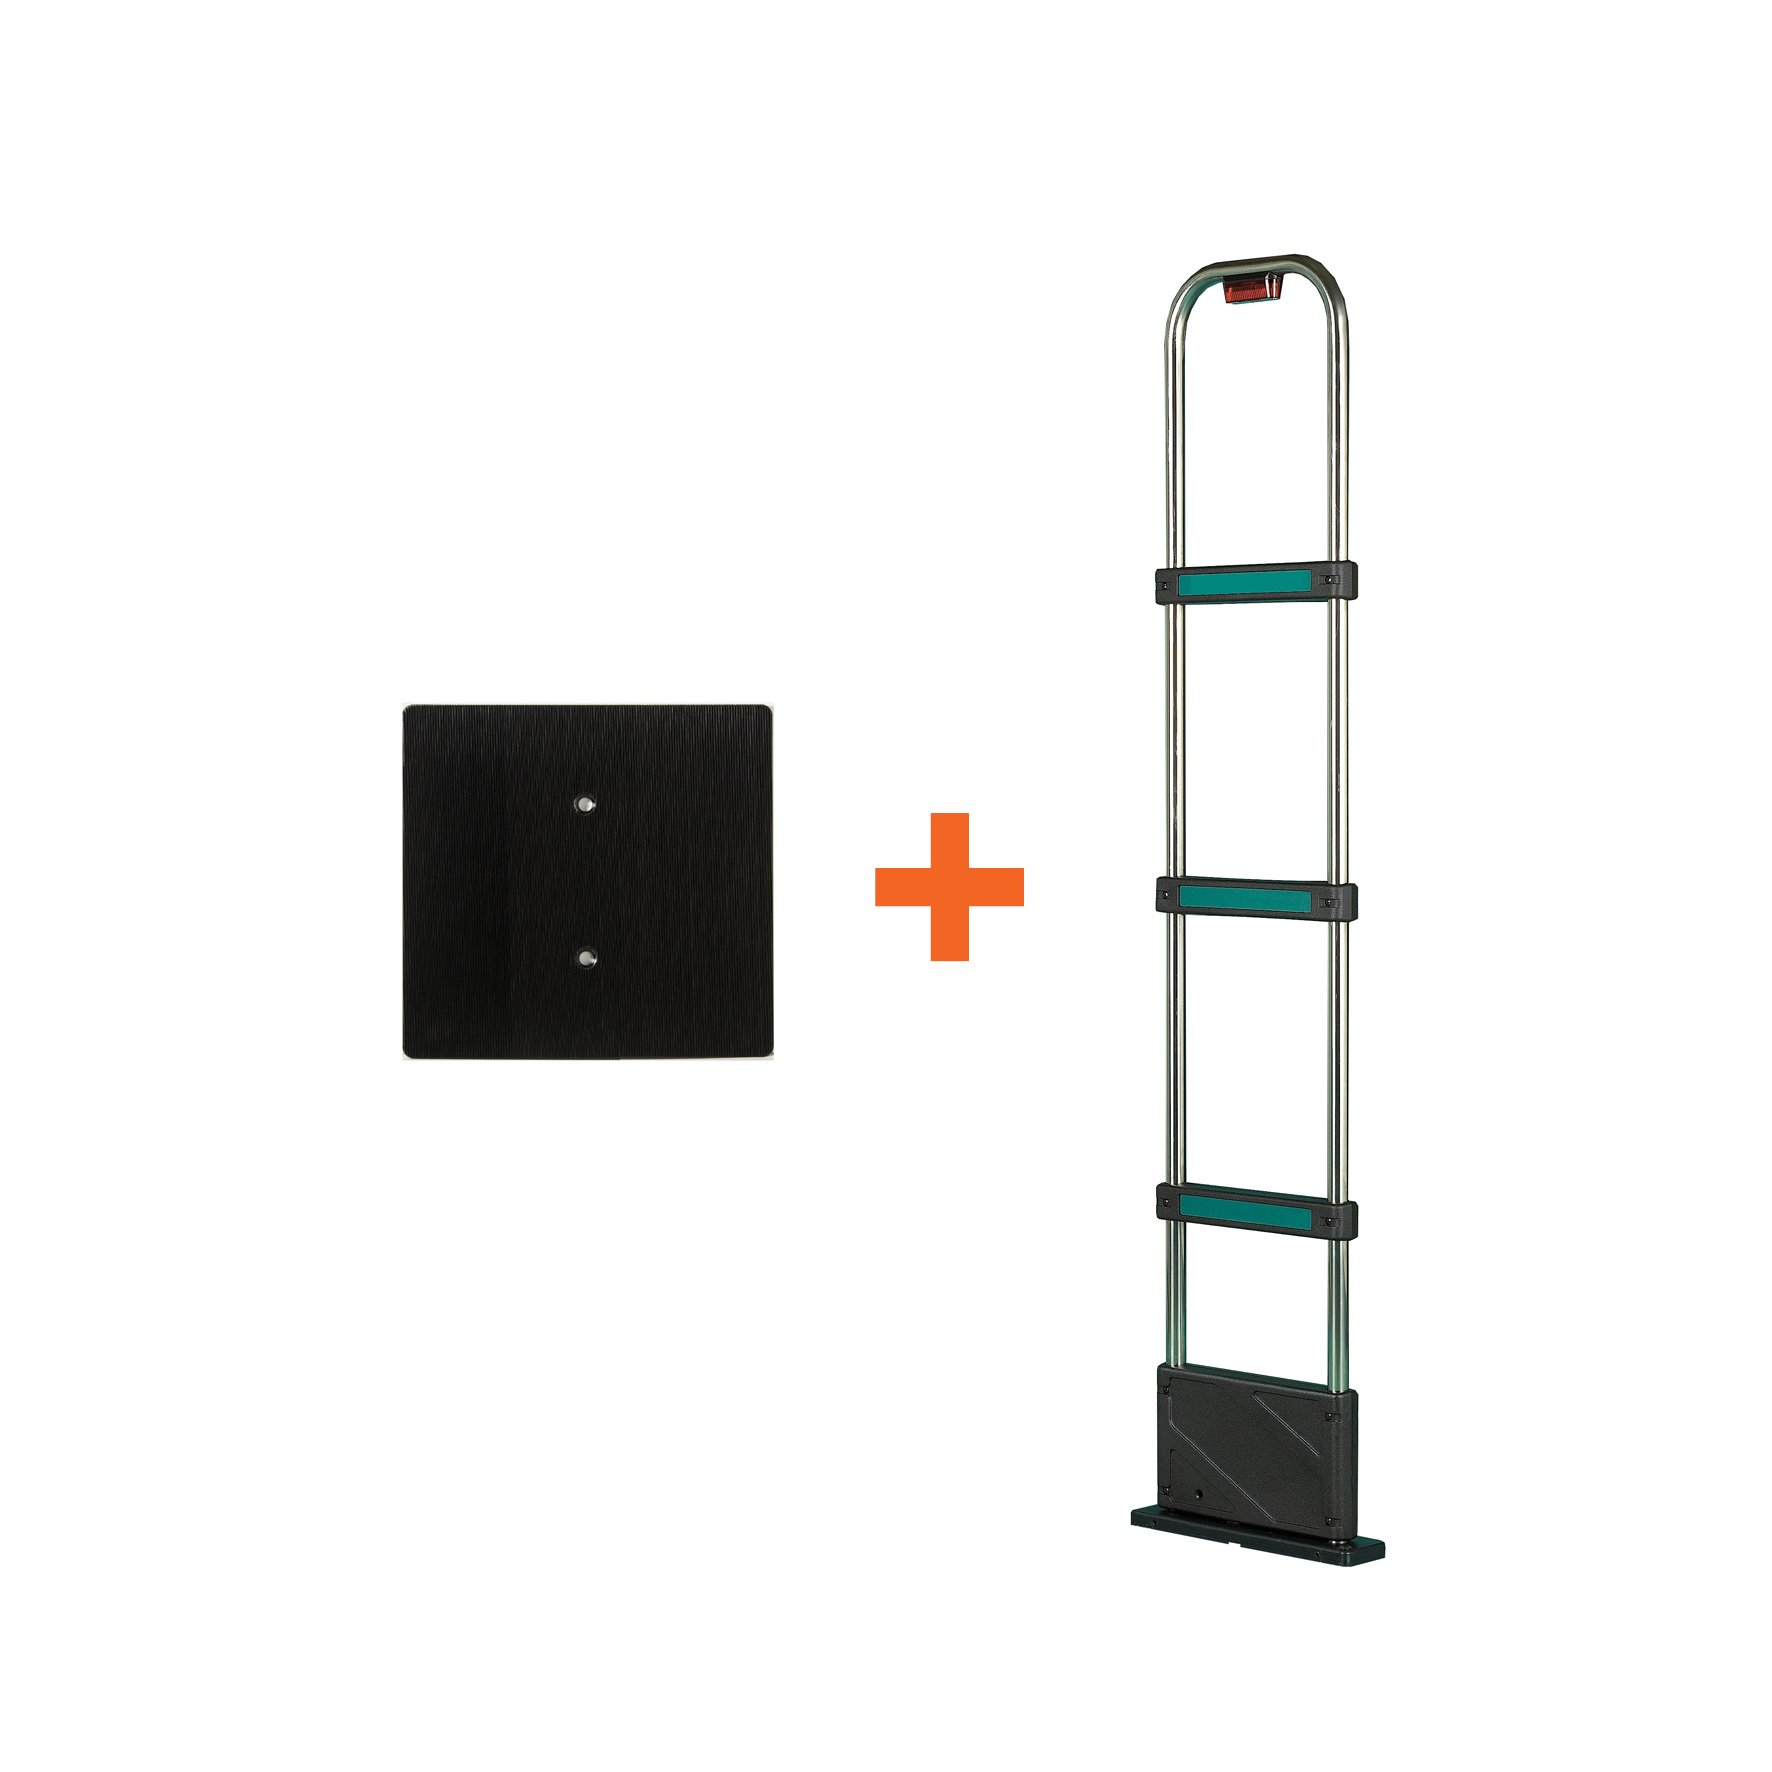 Retail Security Value Pack Including Tower + Deactivator + Soft Labels - EAS Loss Prevention - MADE IN USA by Sensornation (Image #3)